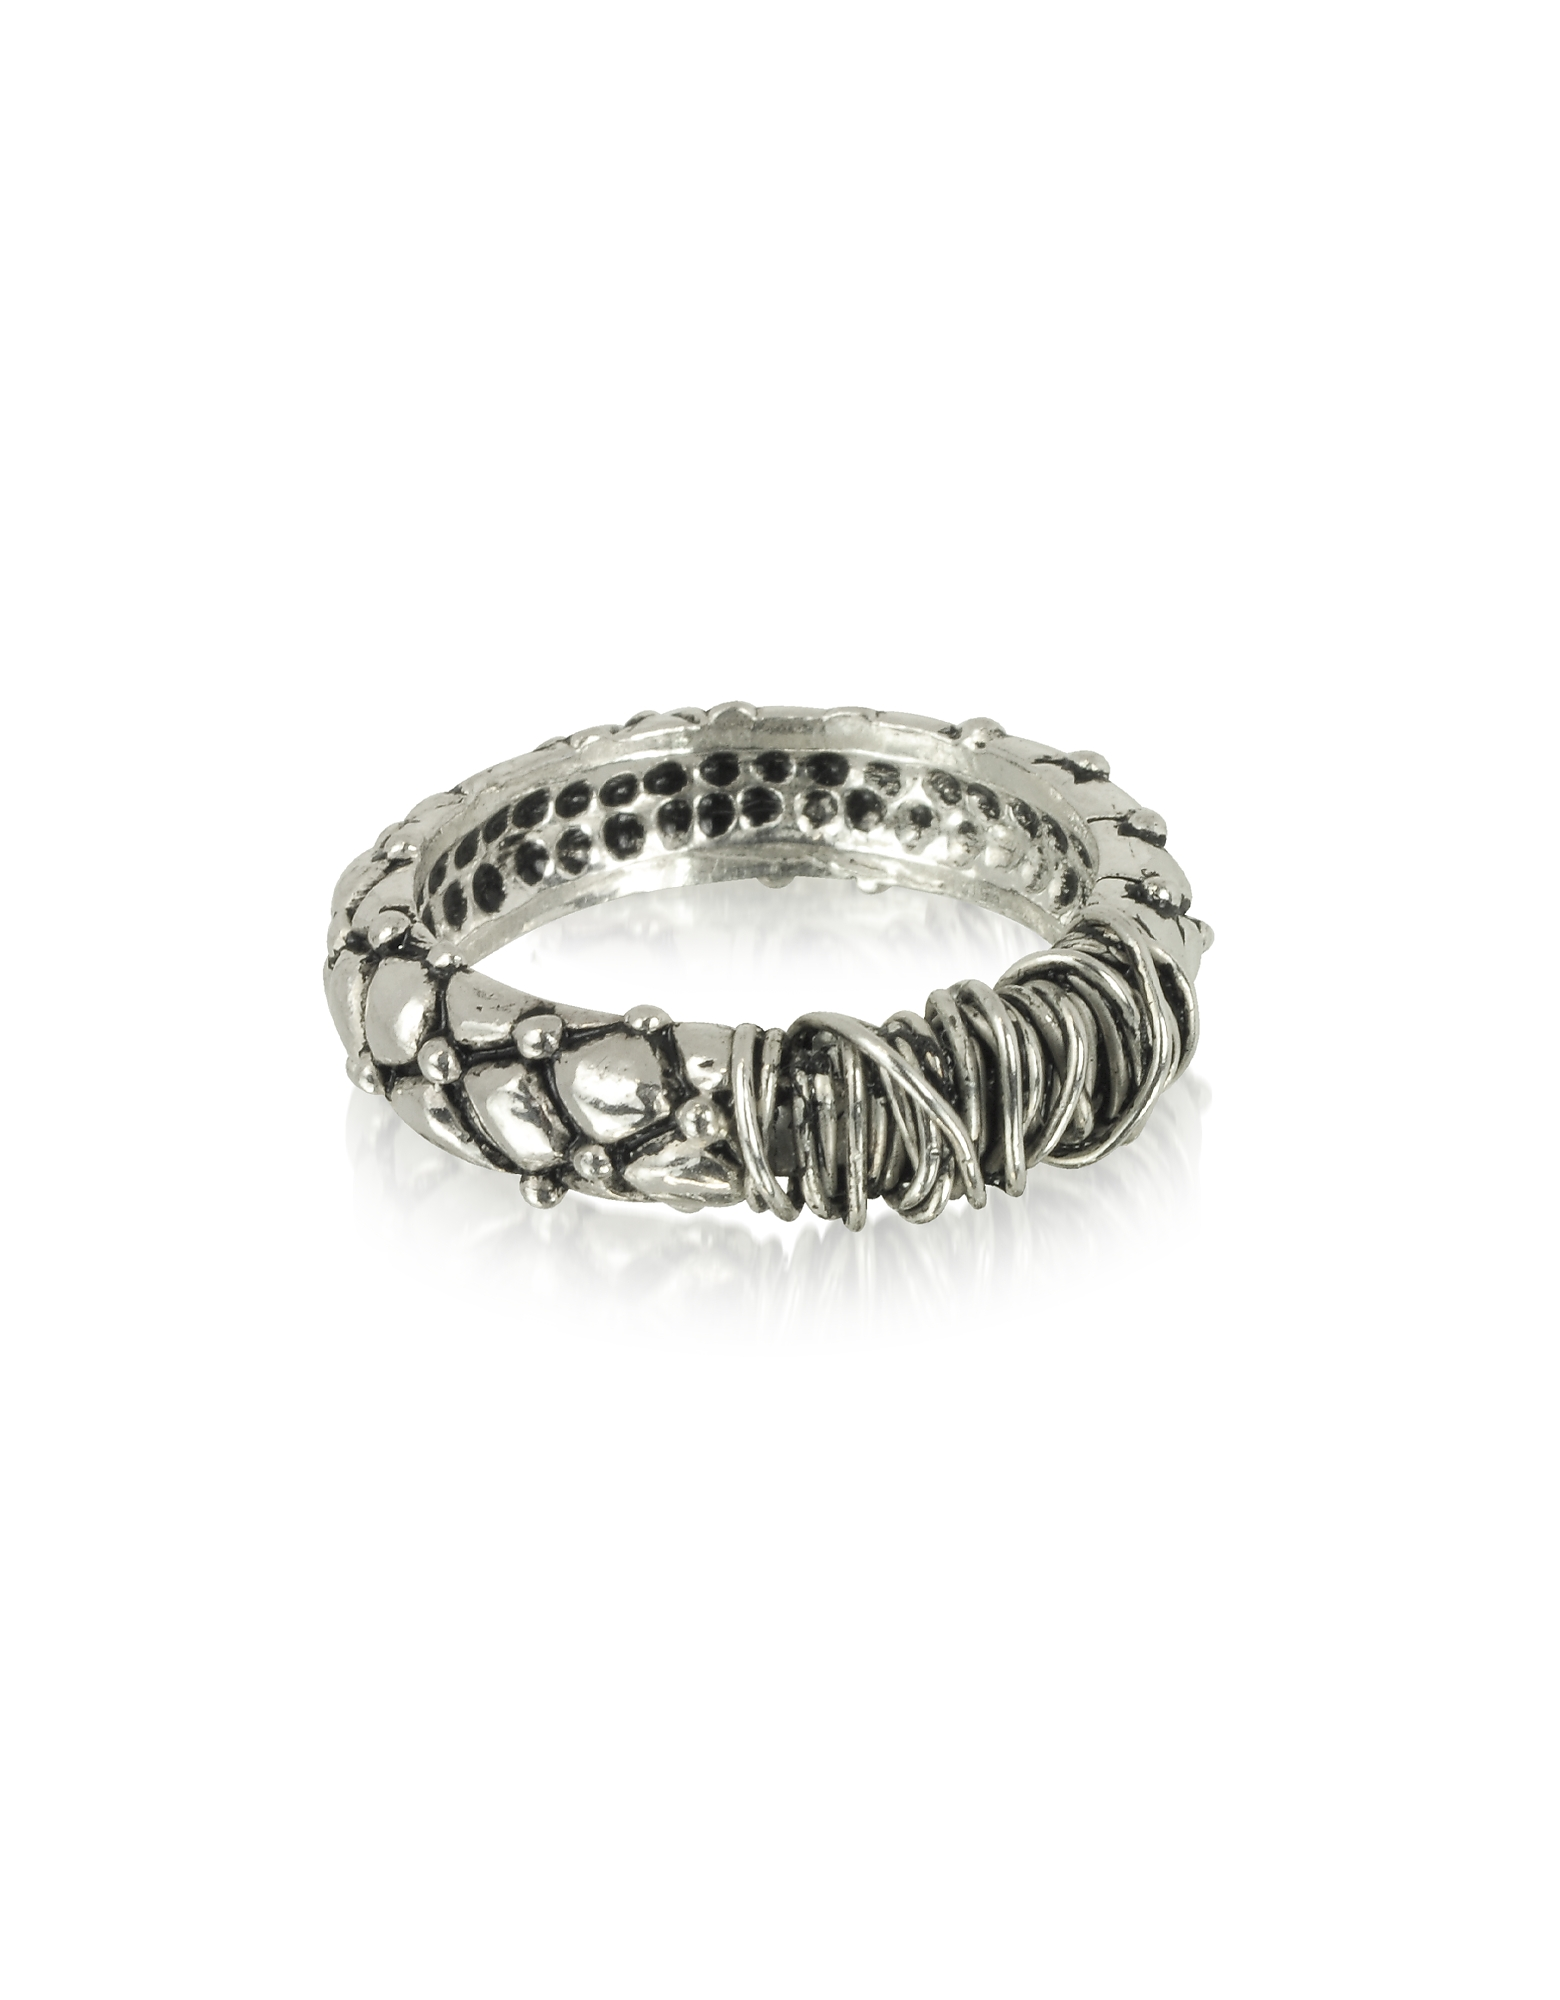 Giacomo Burroni Men's Rings, Sterling Silver Ring w/Etruscan Knot